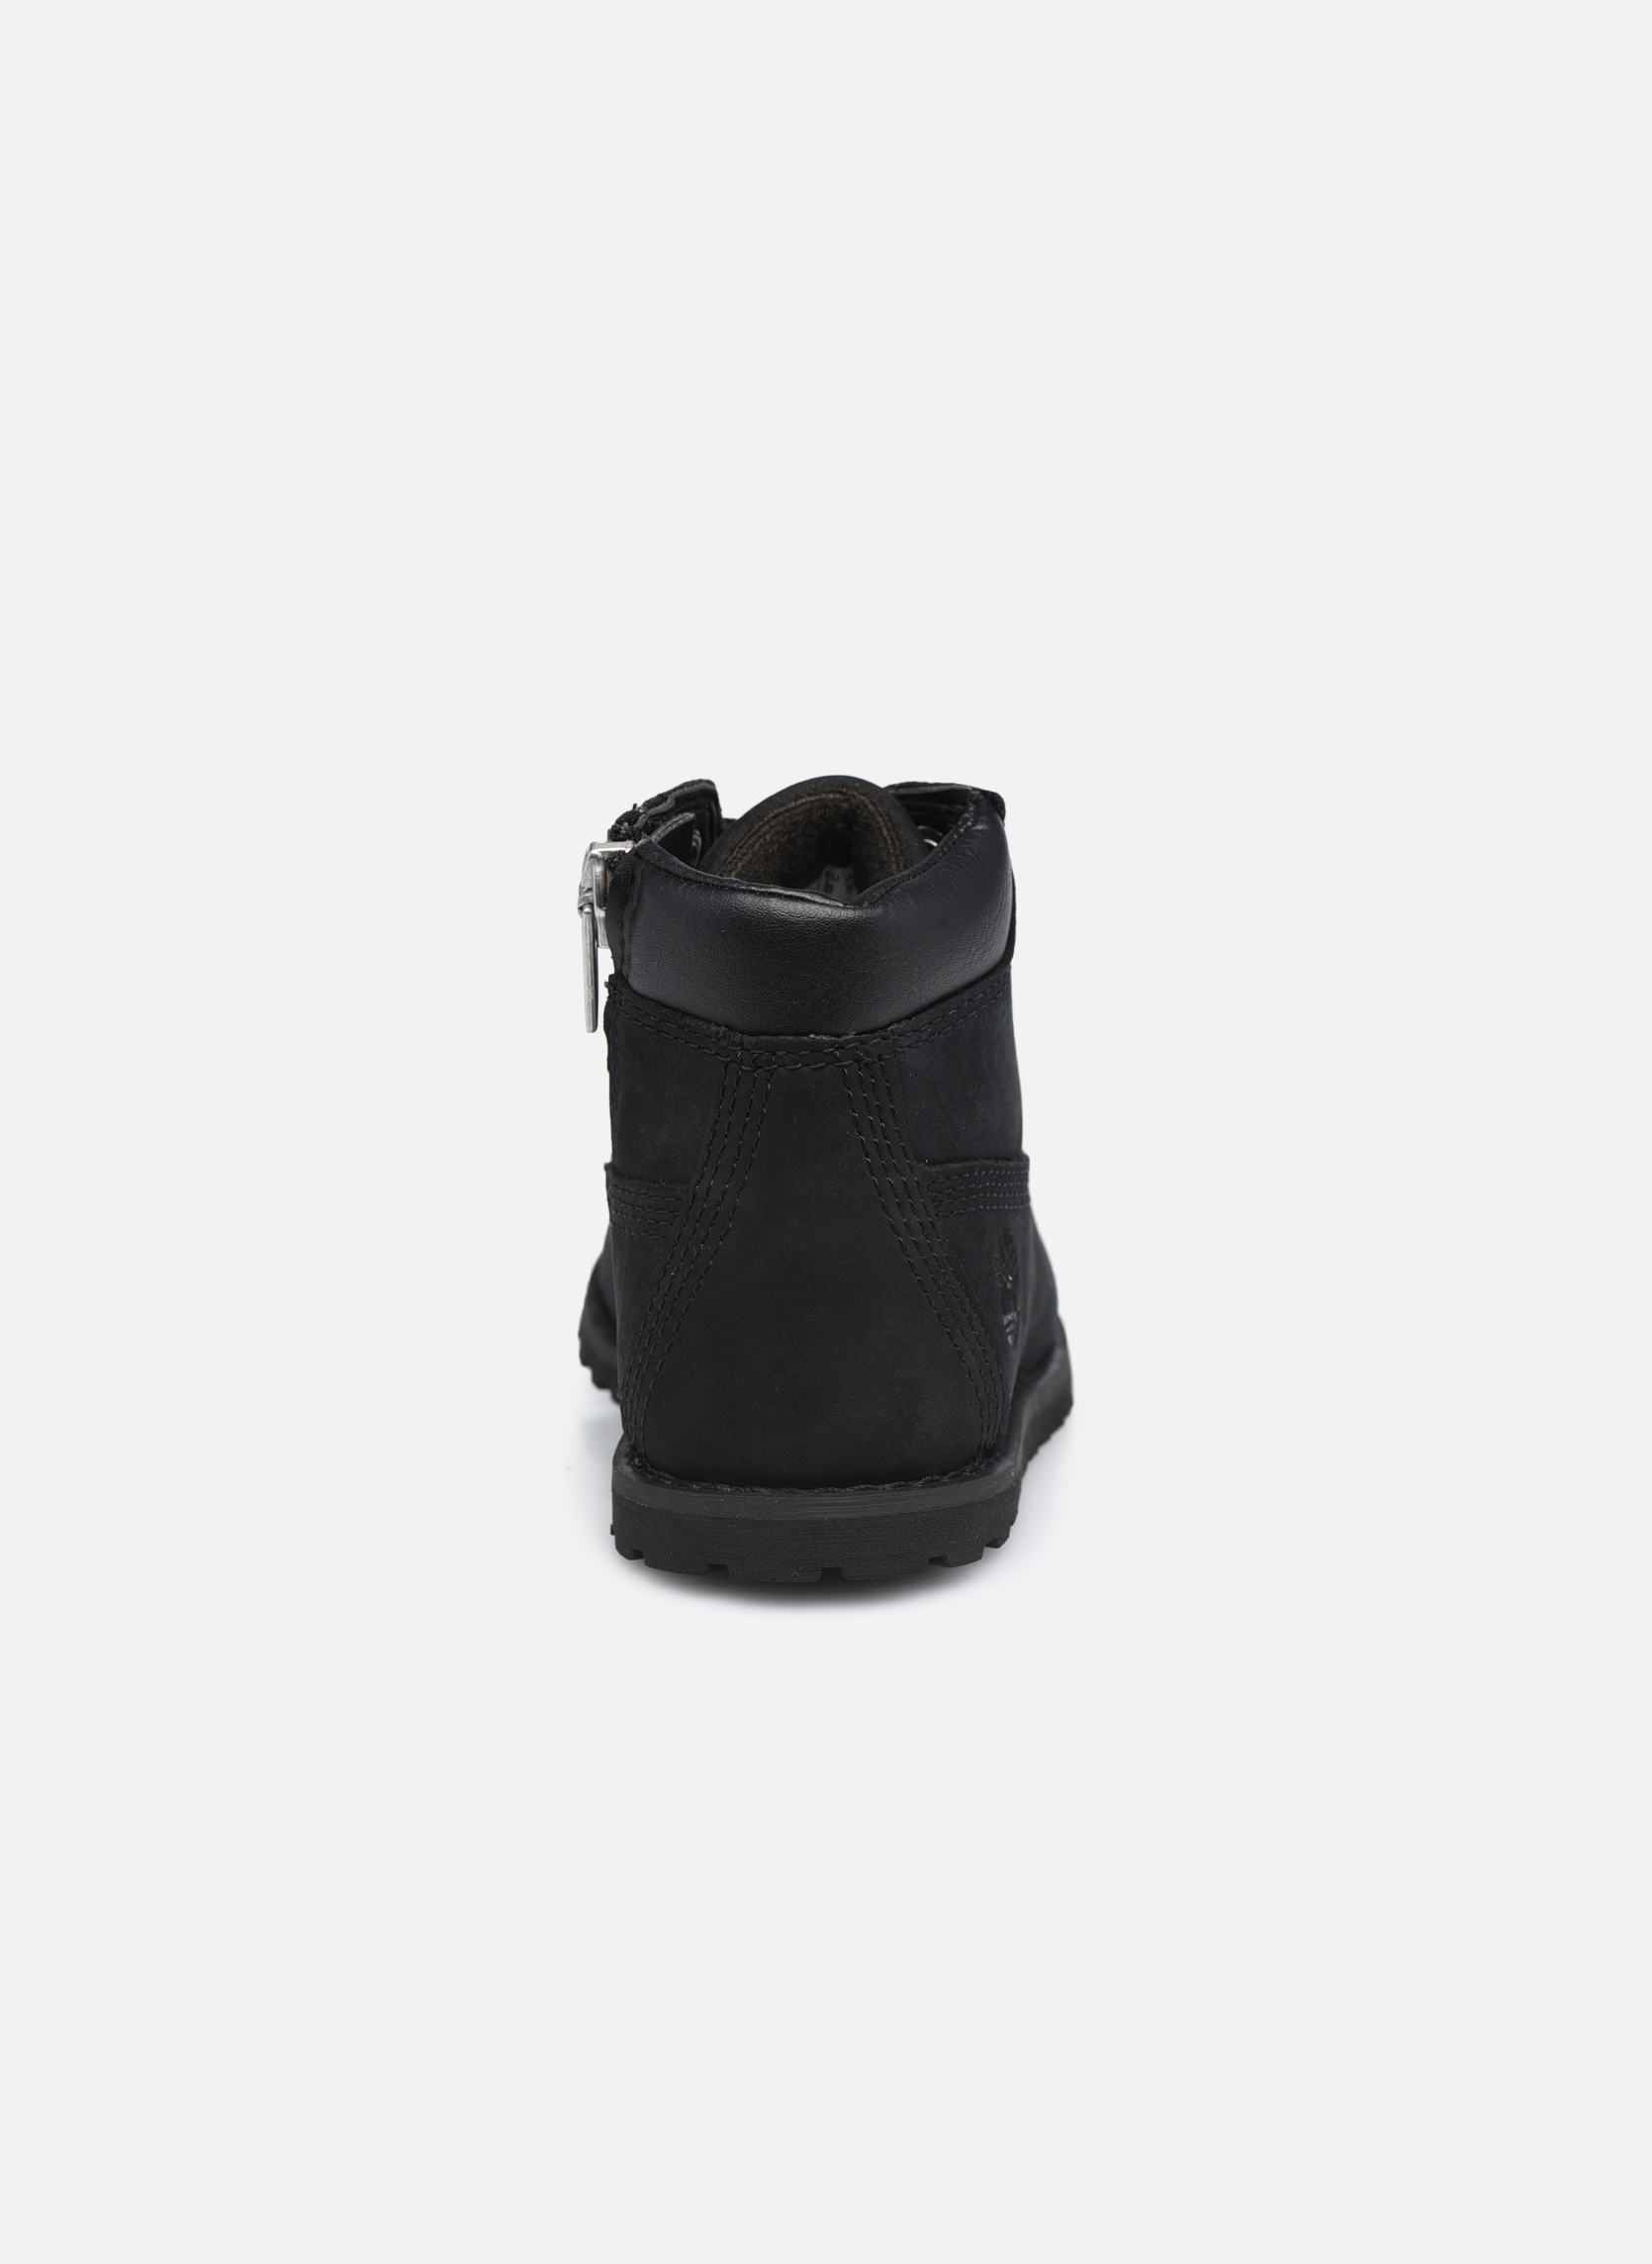 Pokey Pine 6In Boot with Blackout